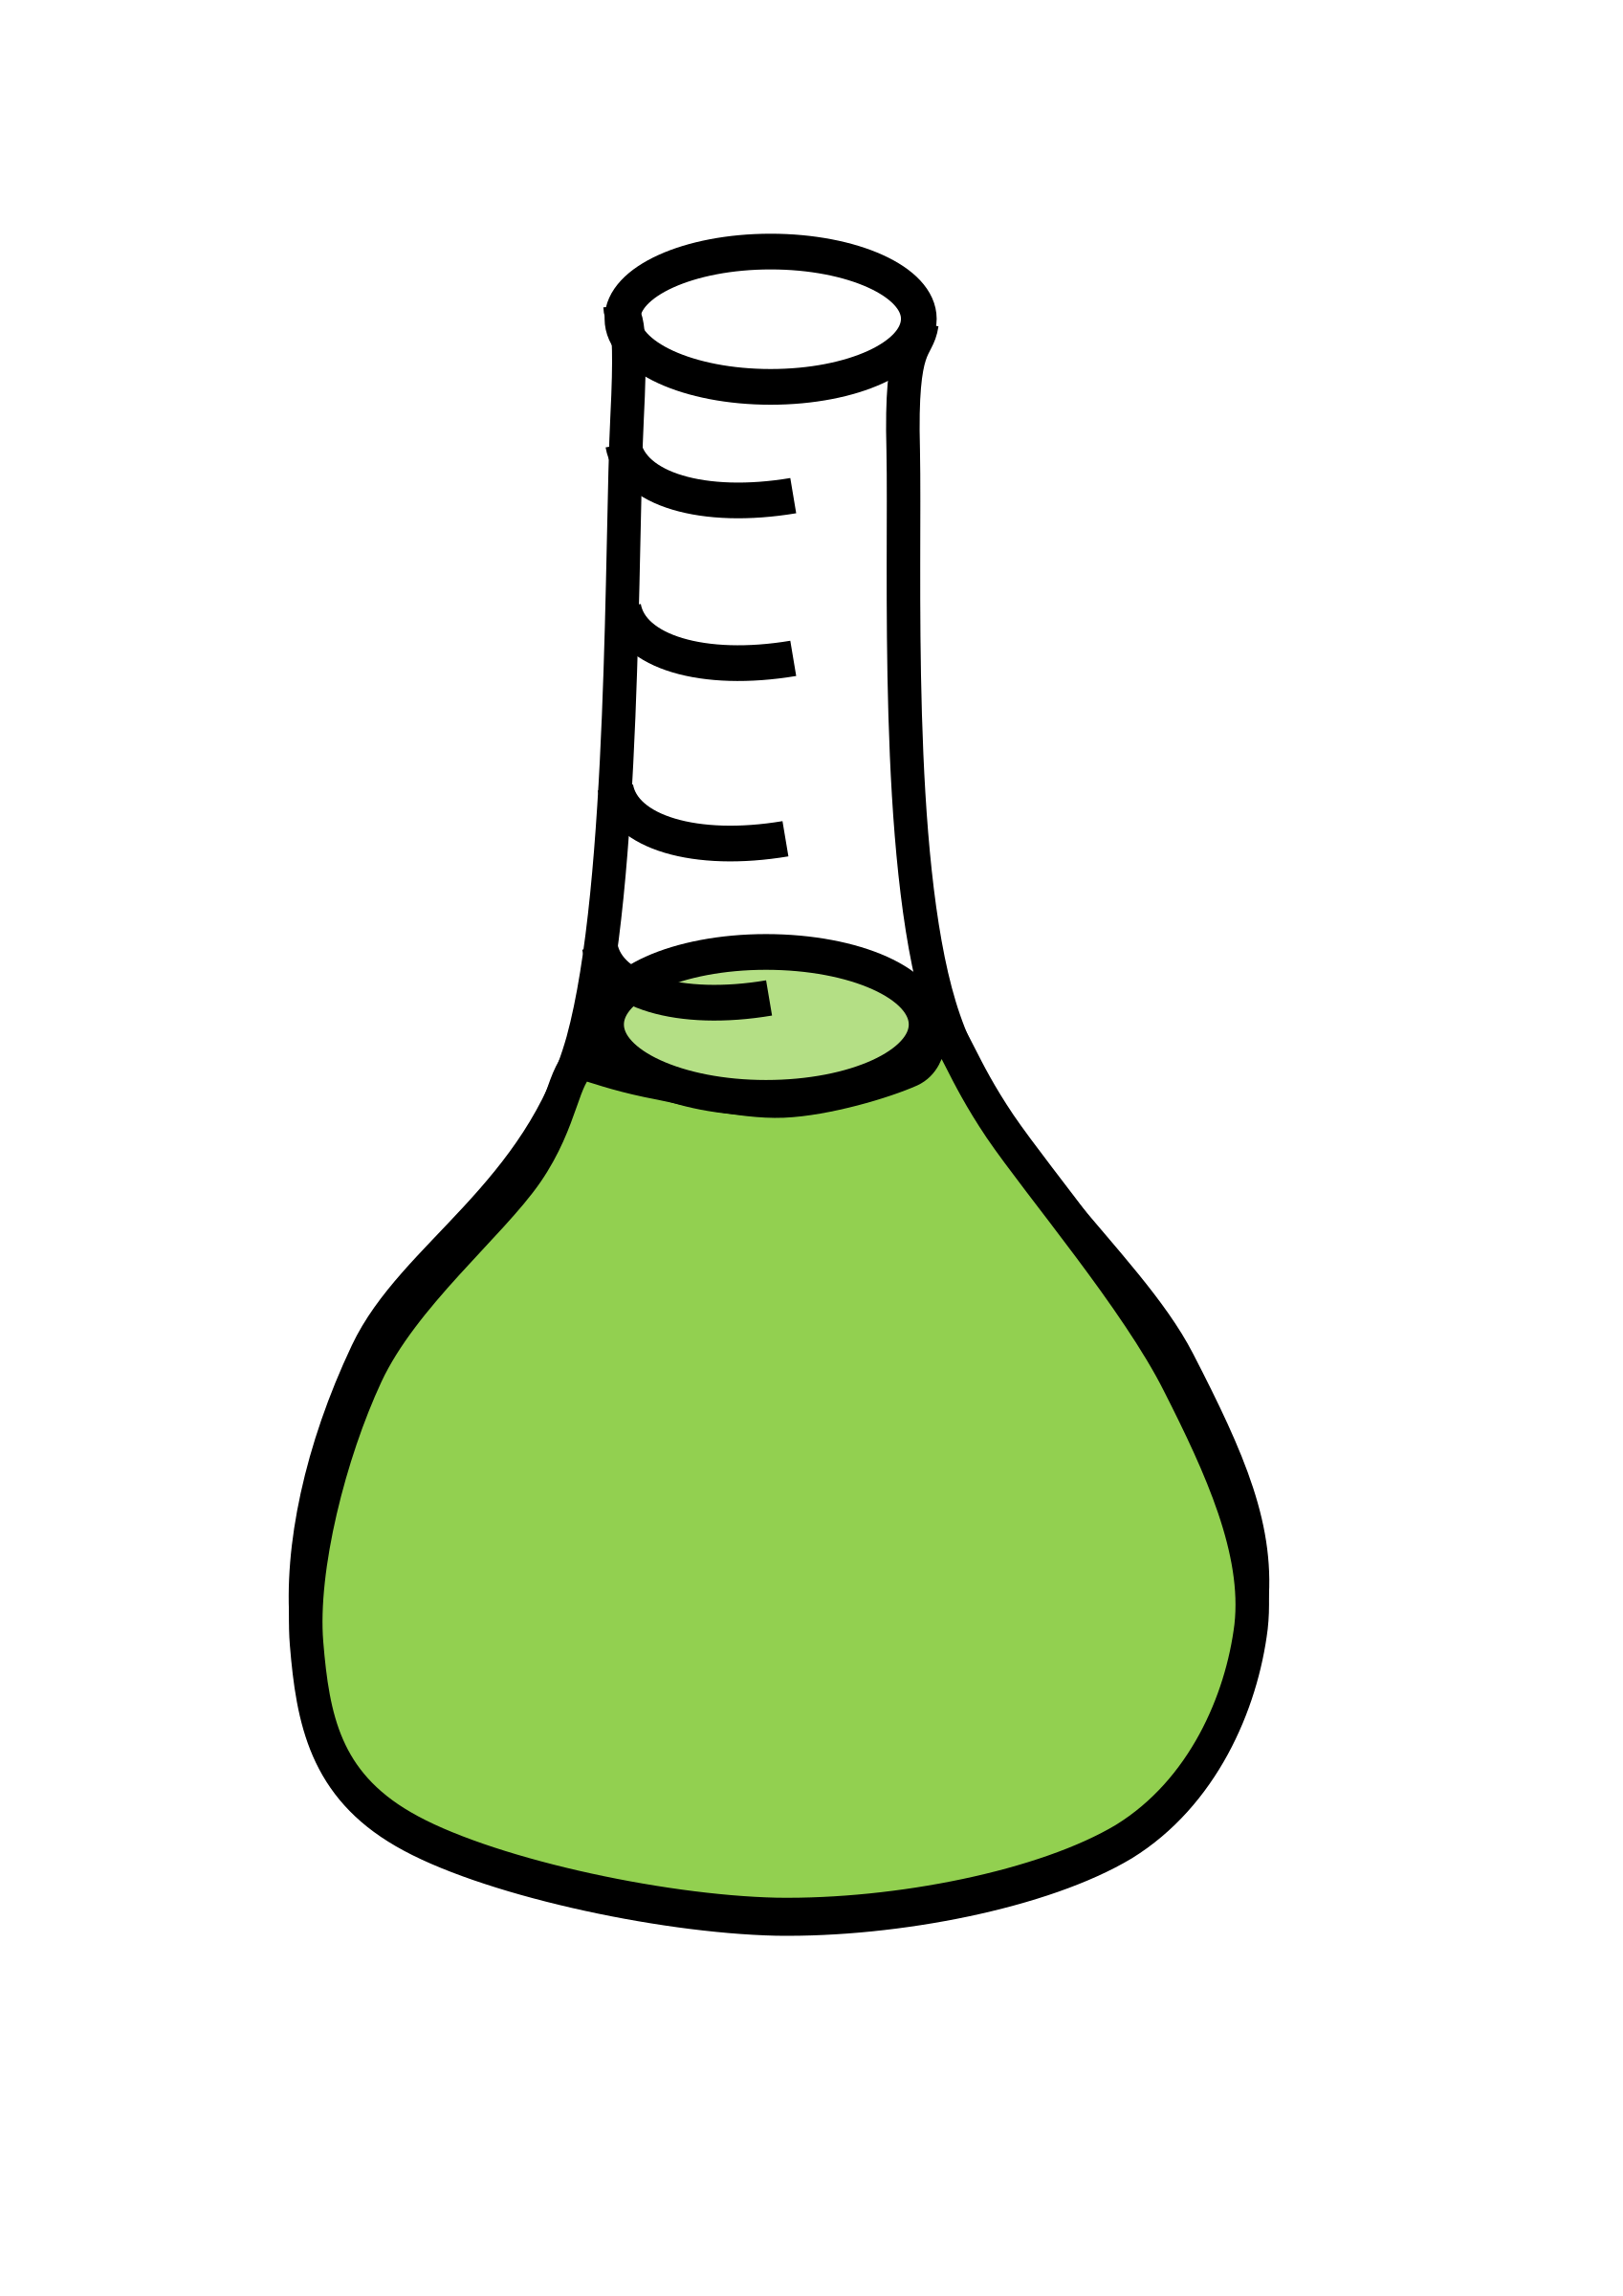 Beaker green png. Erlenmeyer flask with liquid